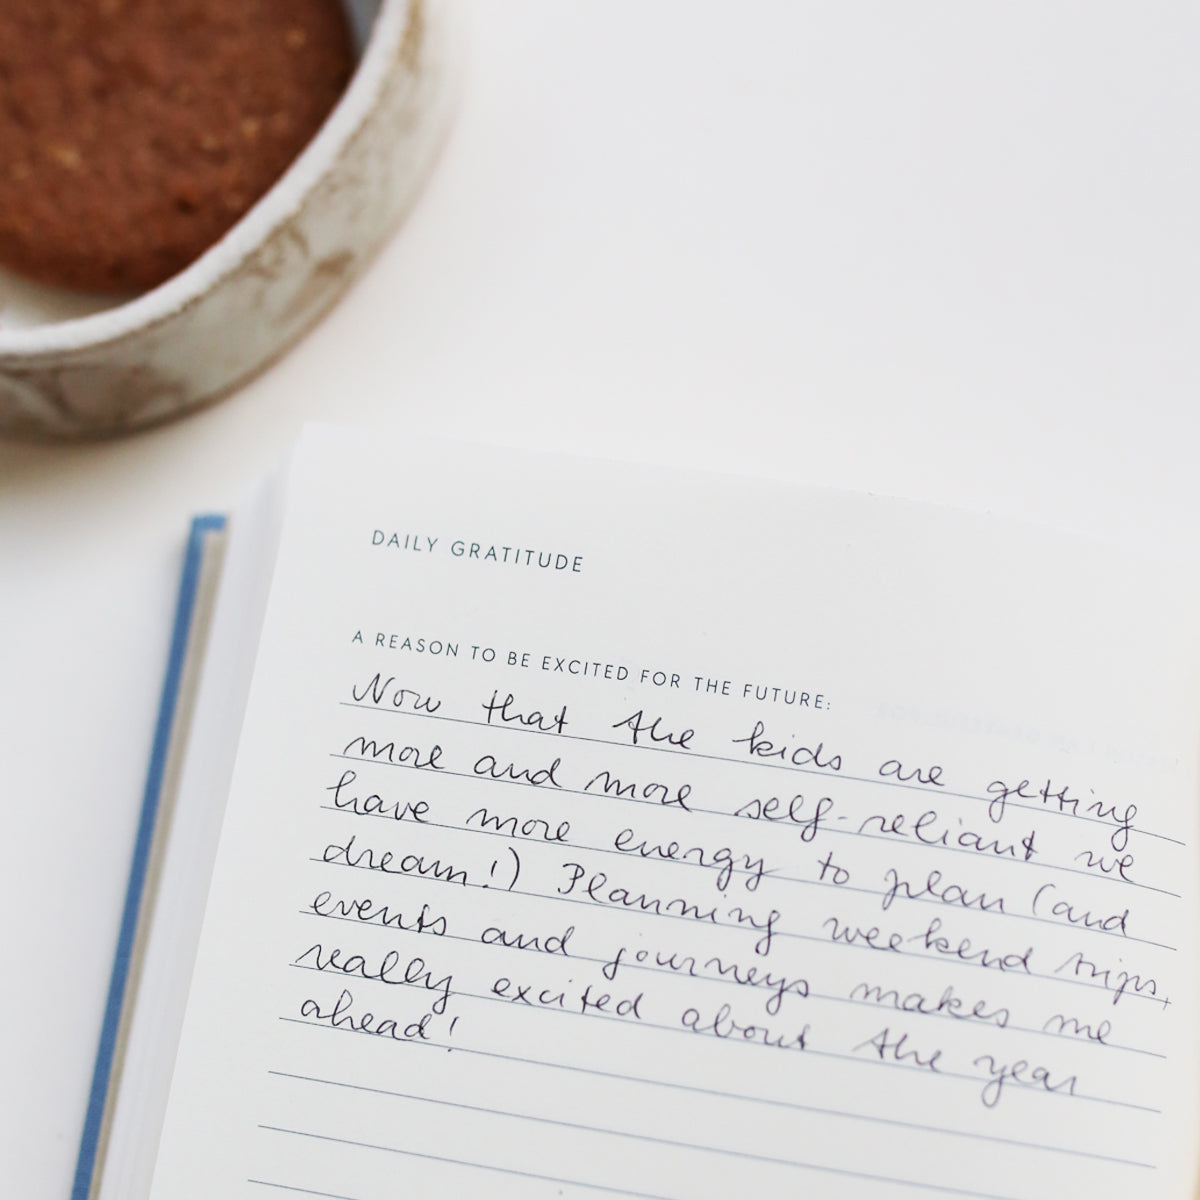 A question in the Gratitude Journal